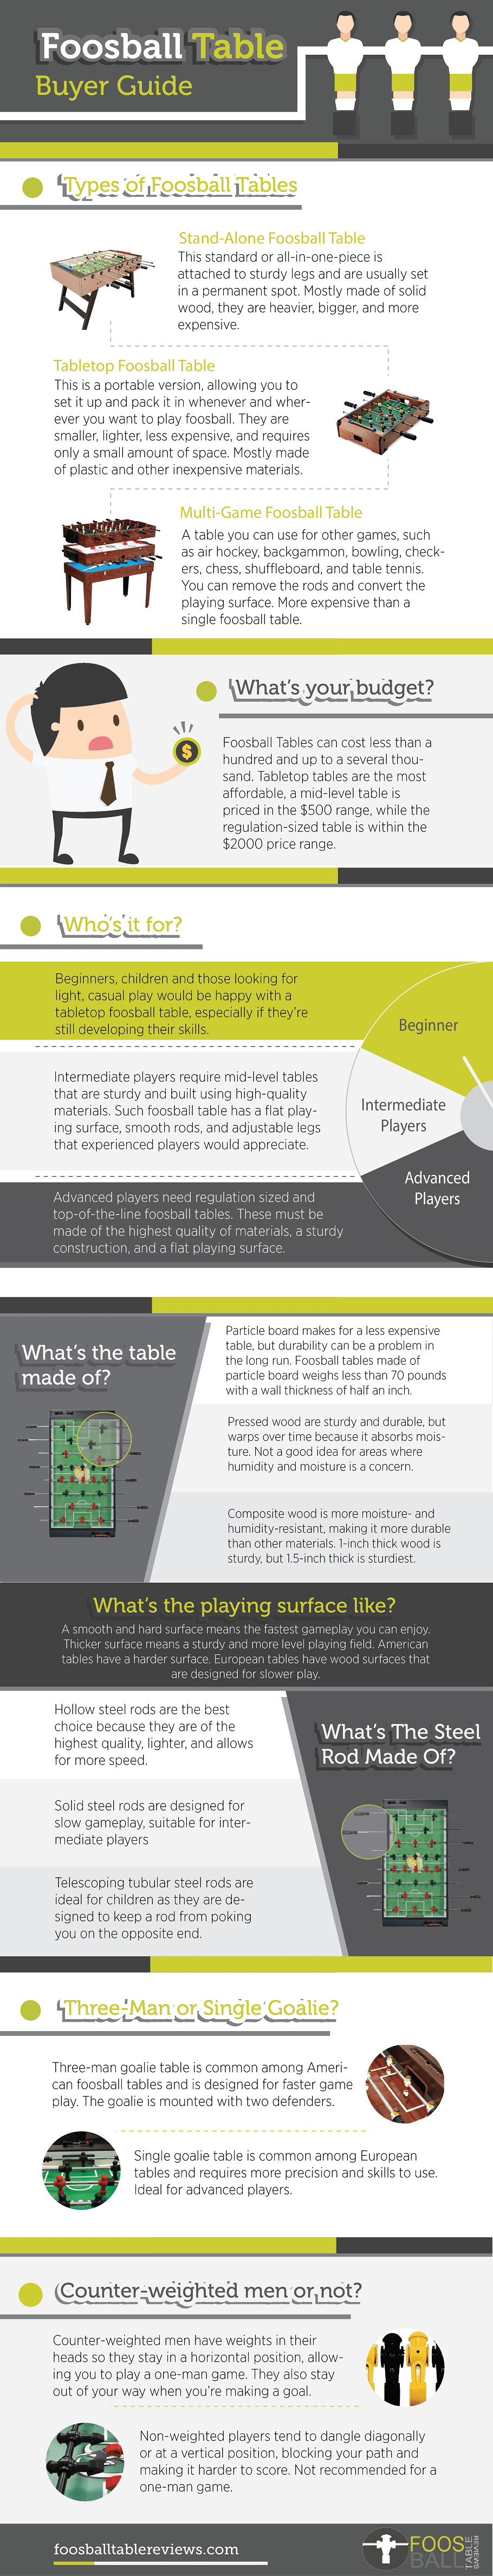 Foosball-Table-Buyers-Guide-infographic-plaza